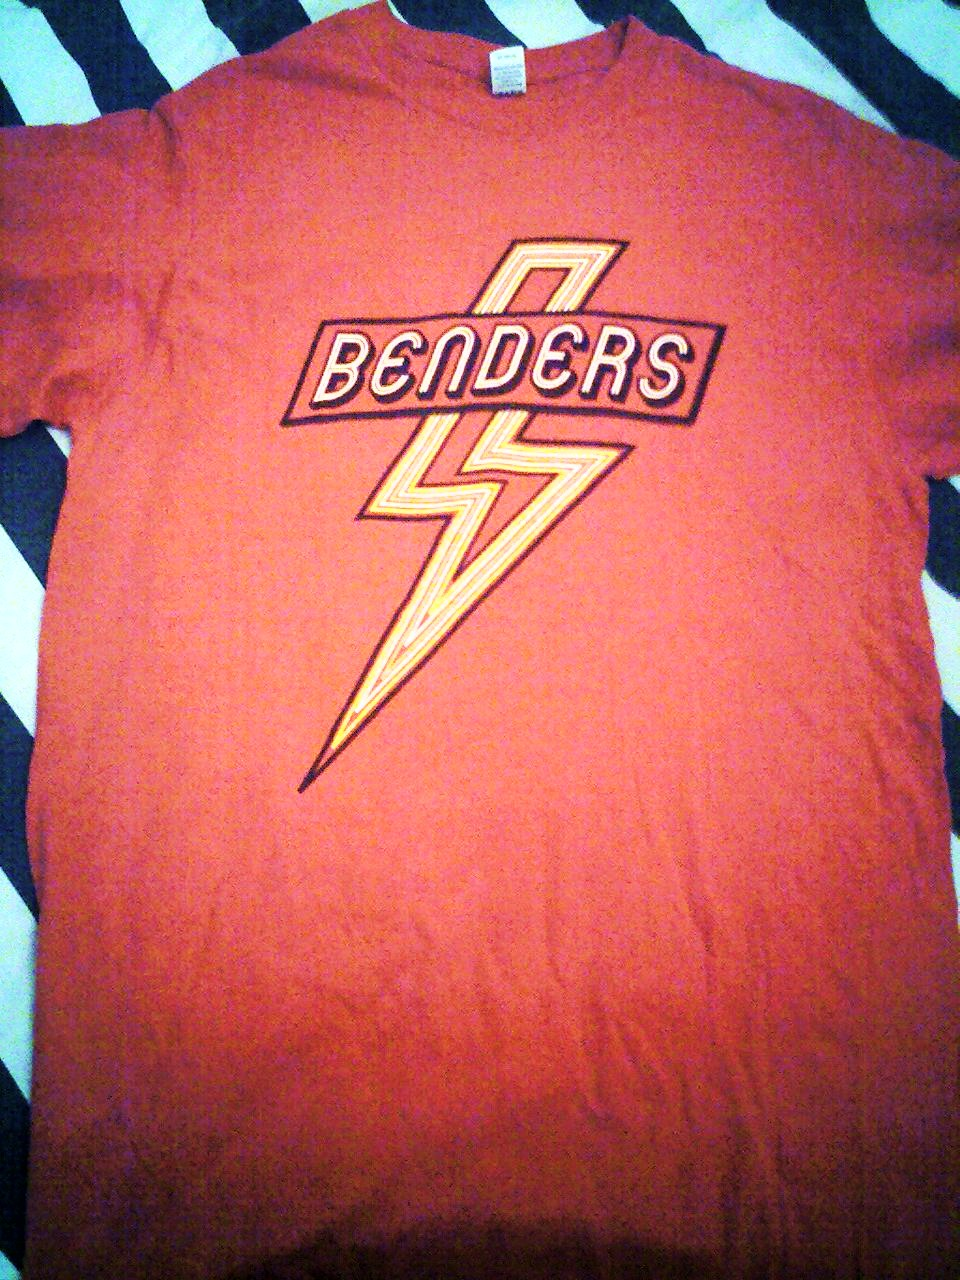 new benders shirt